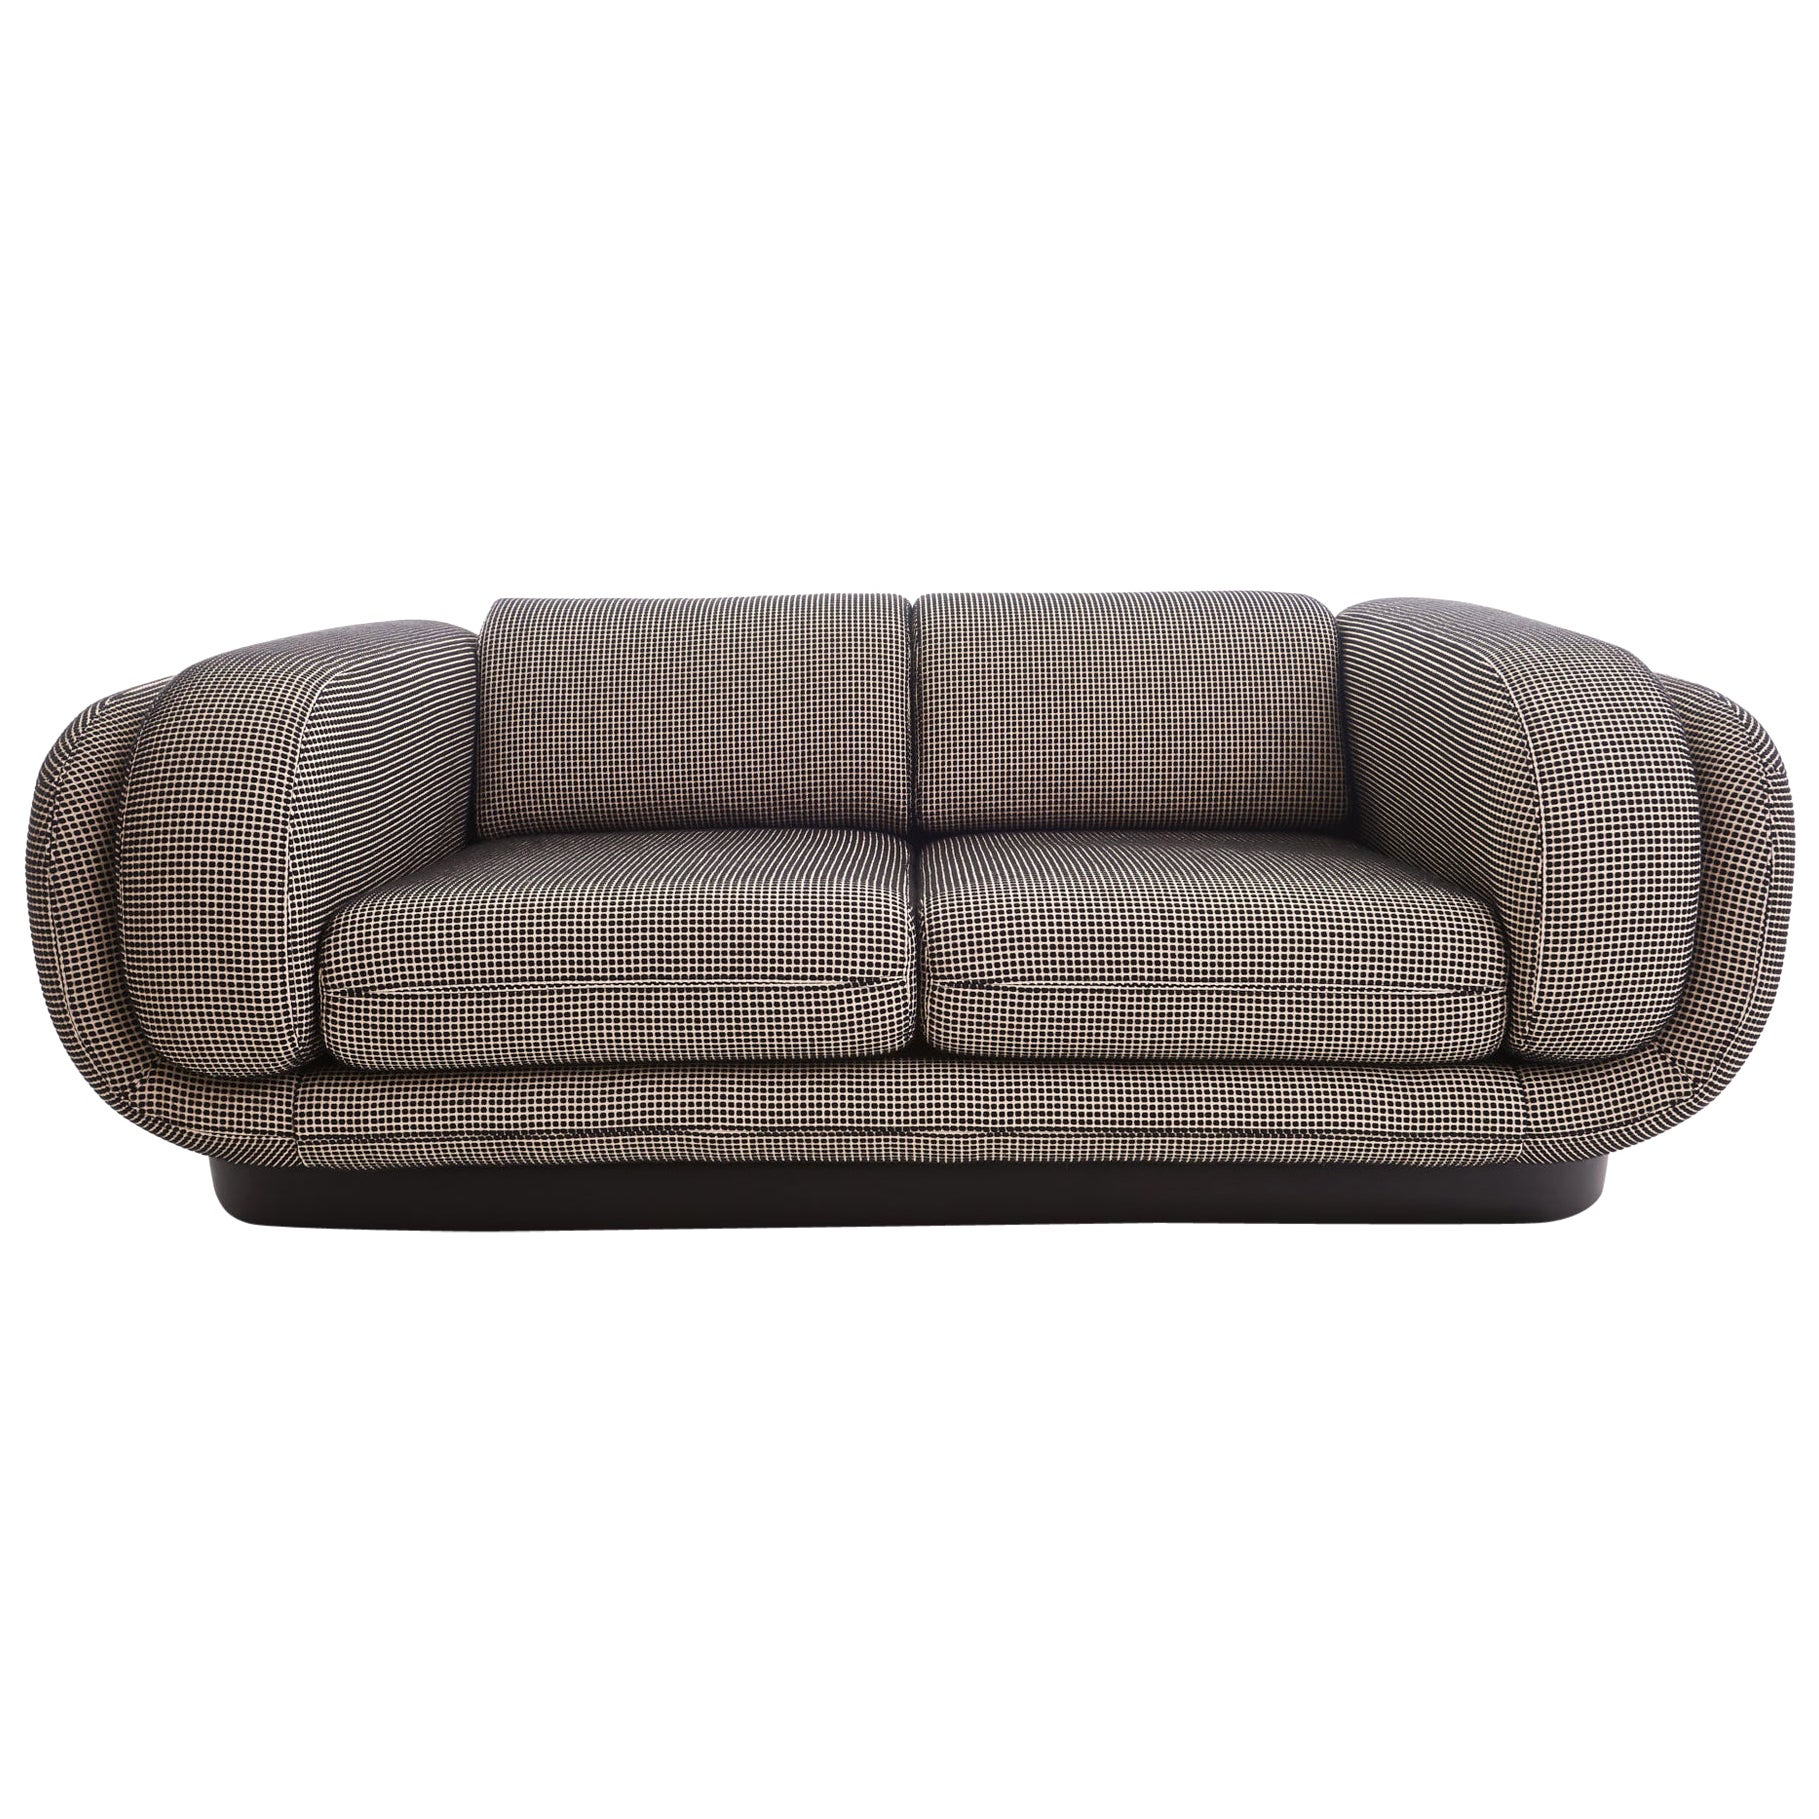 M. Filmore Harty for Preview Settee Loveseat